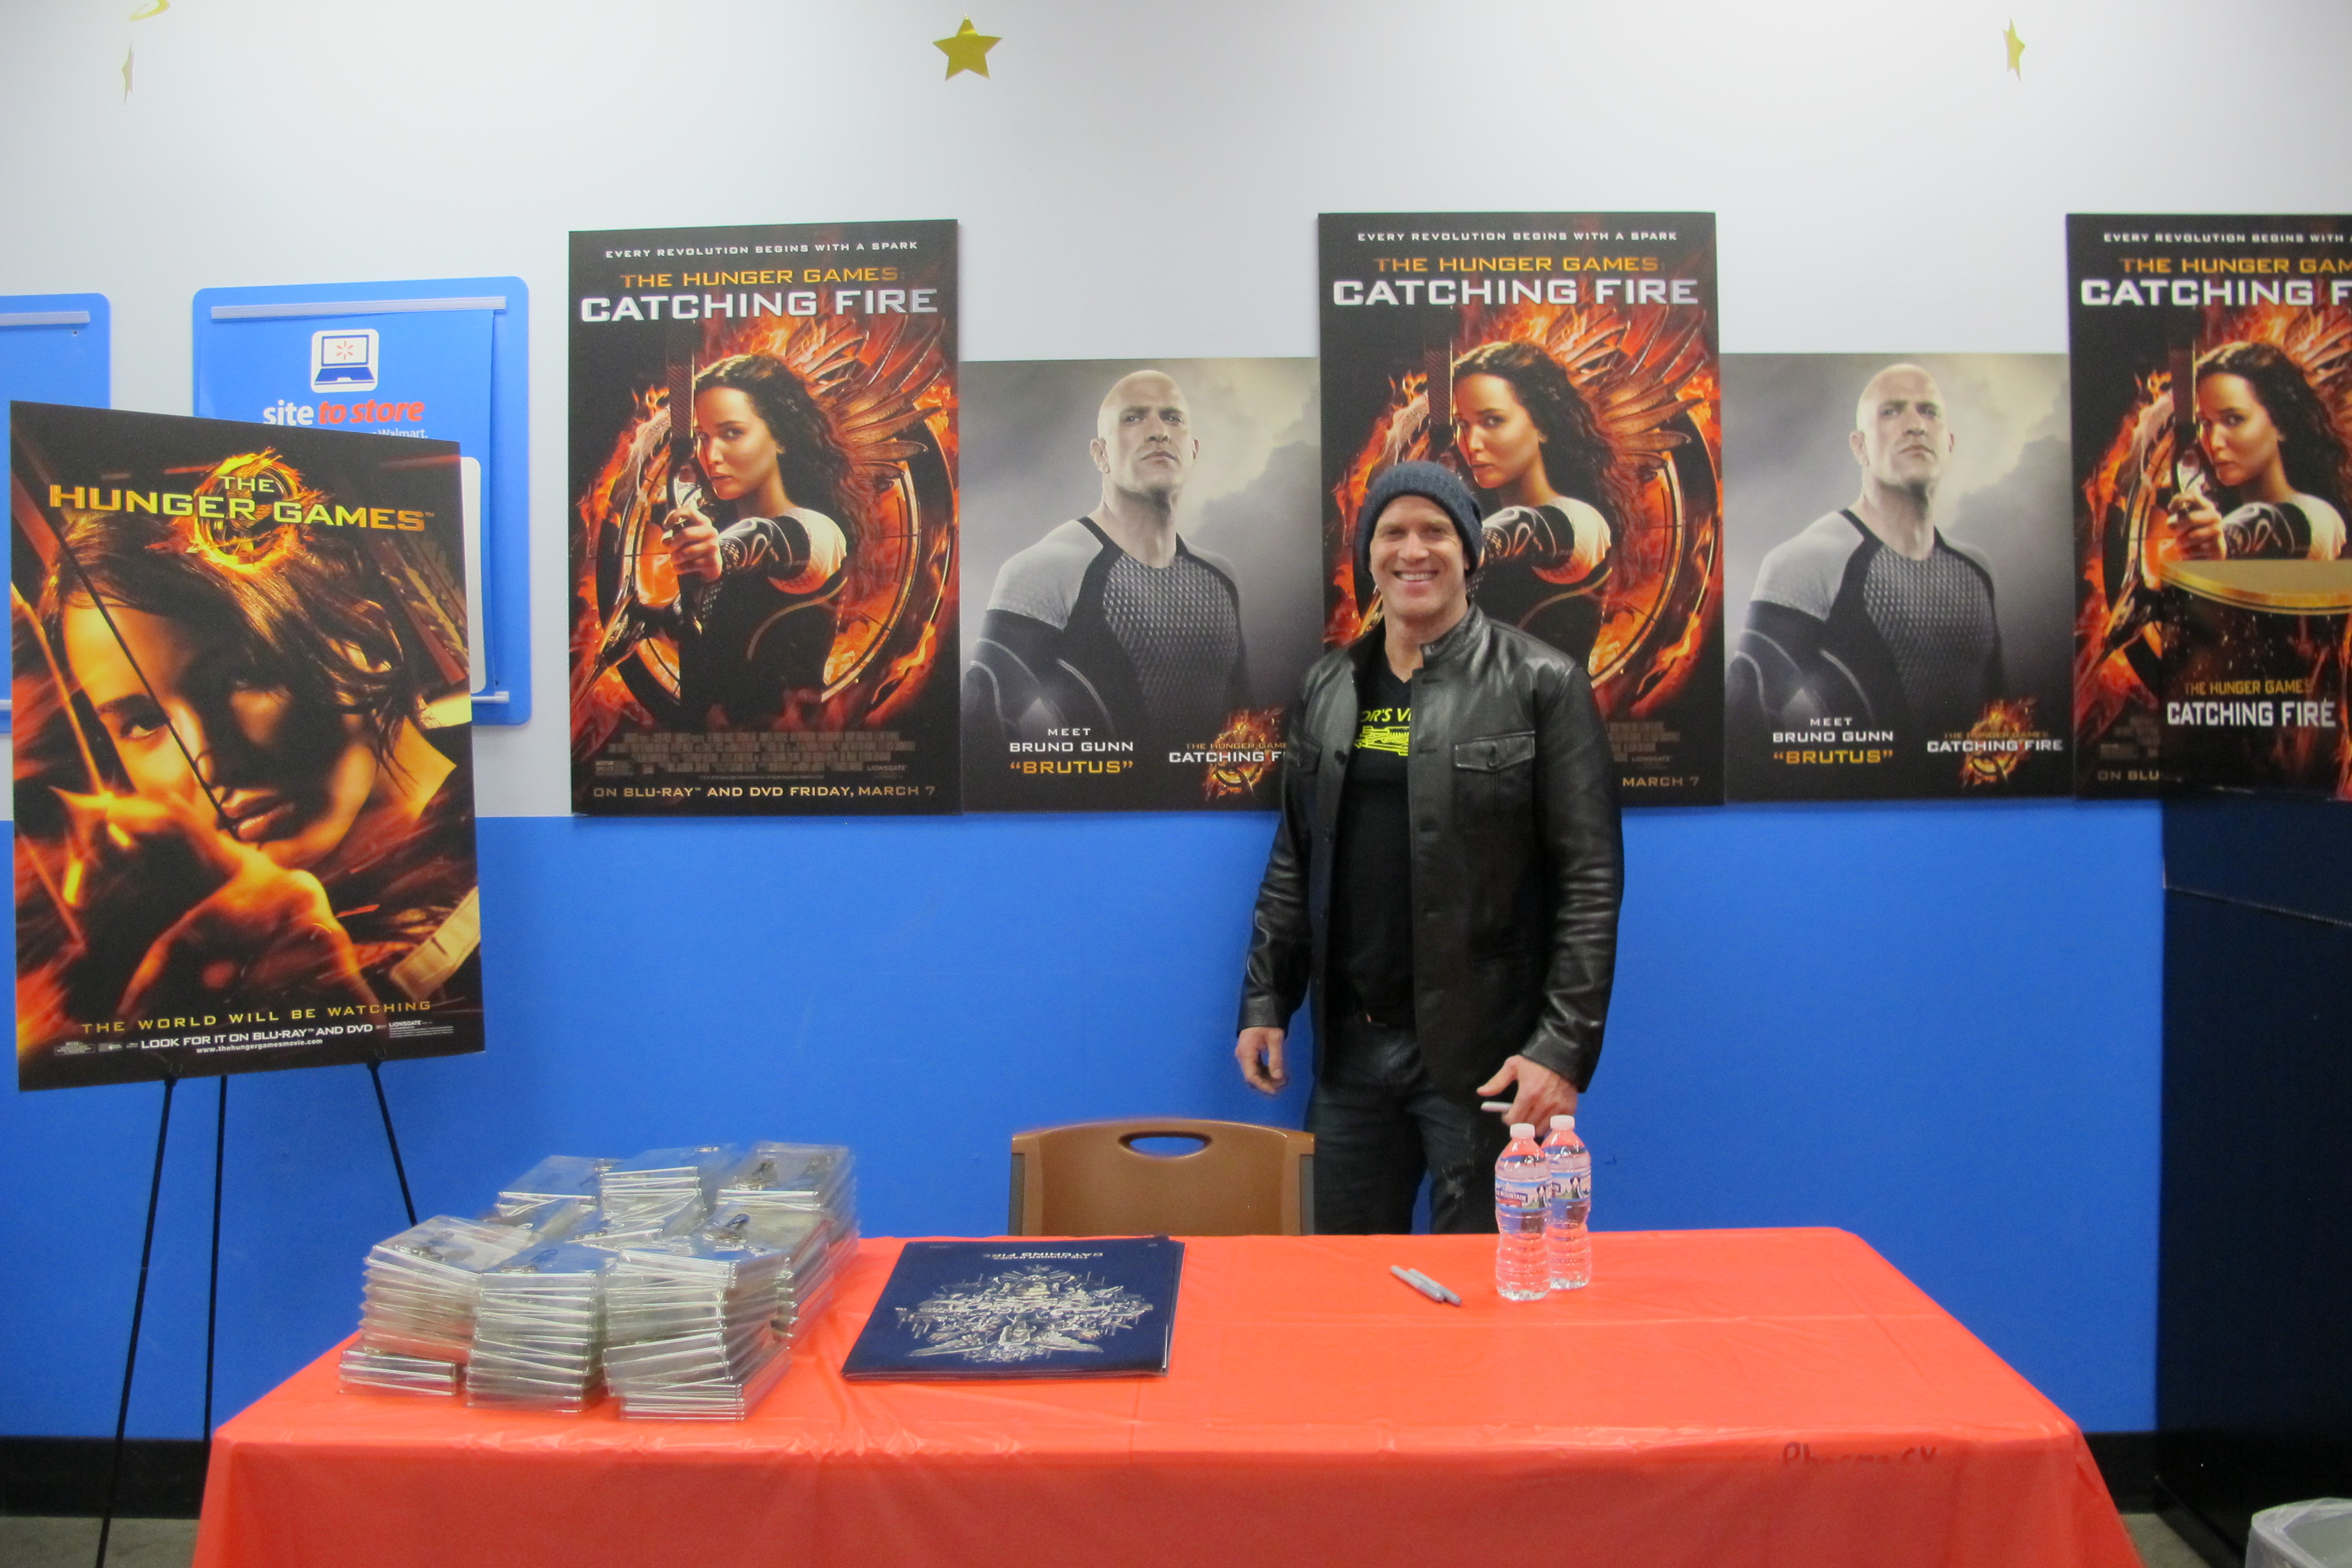 The Catching Fire Cast Midnight Release Appearances At